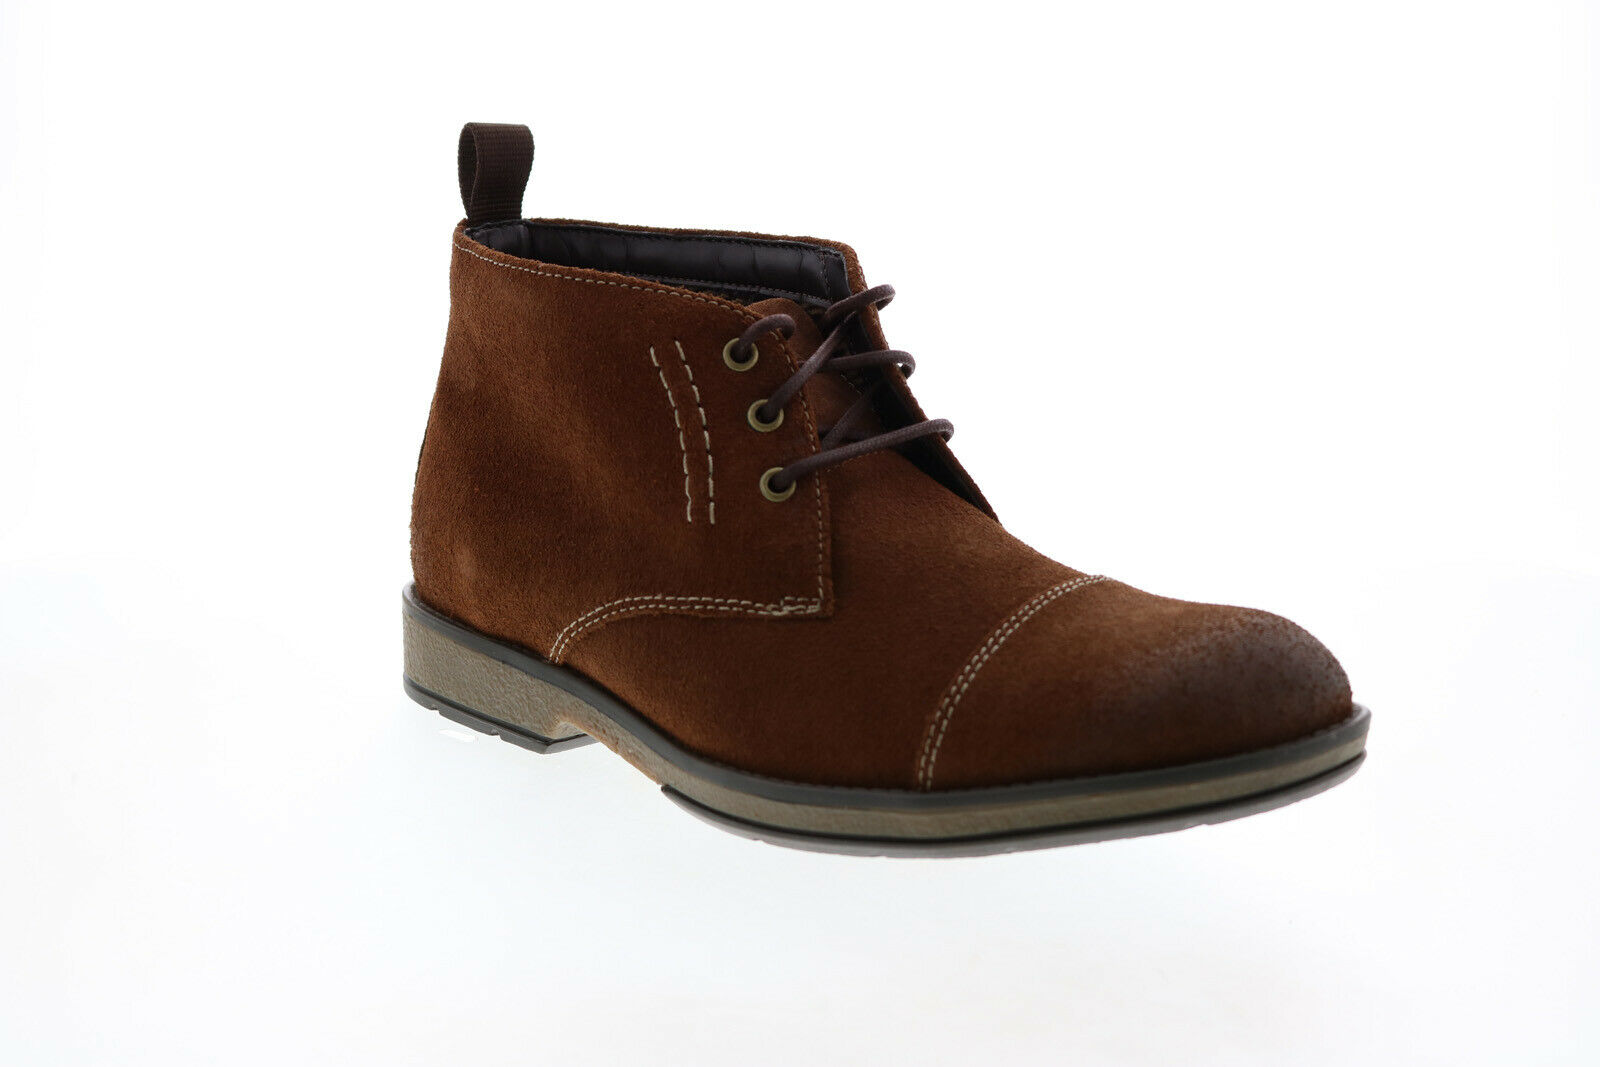 Clarks Hinman Mid 26127747 Mens Brown Suede Lace Up Chukkas Boots